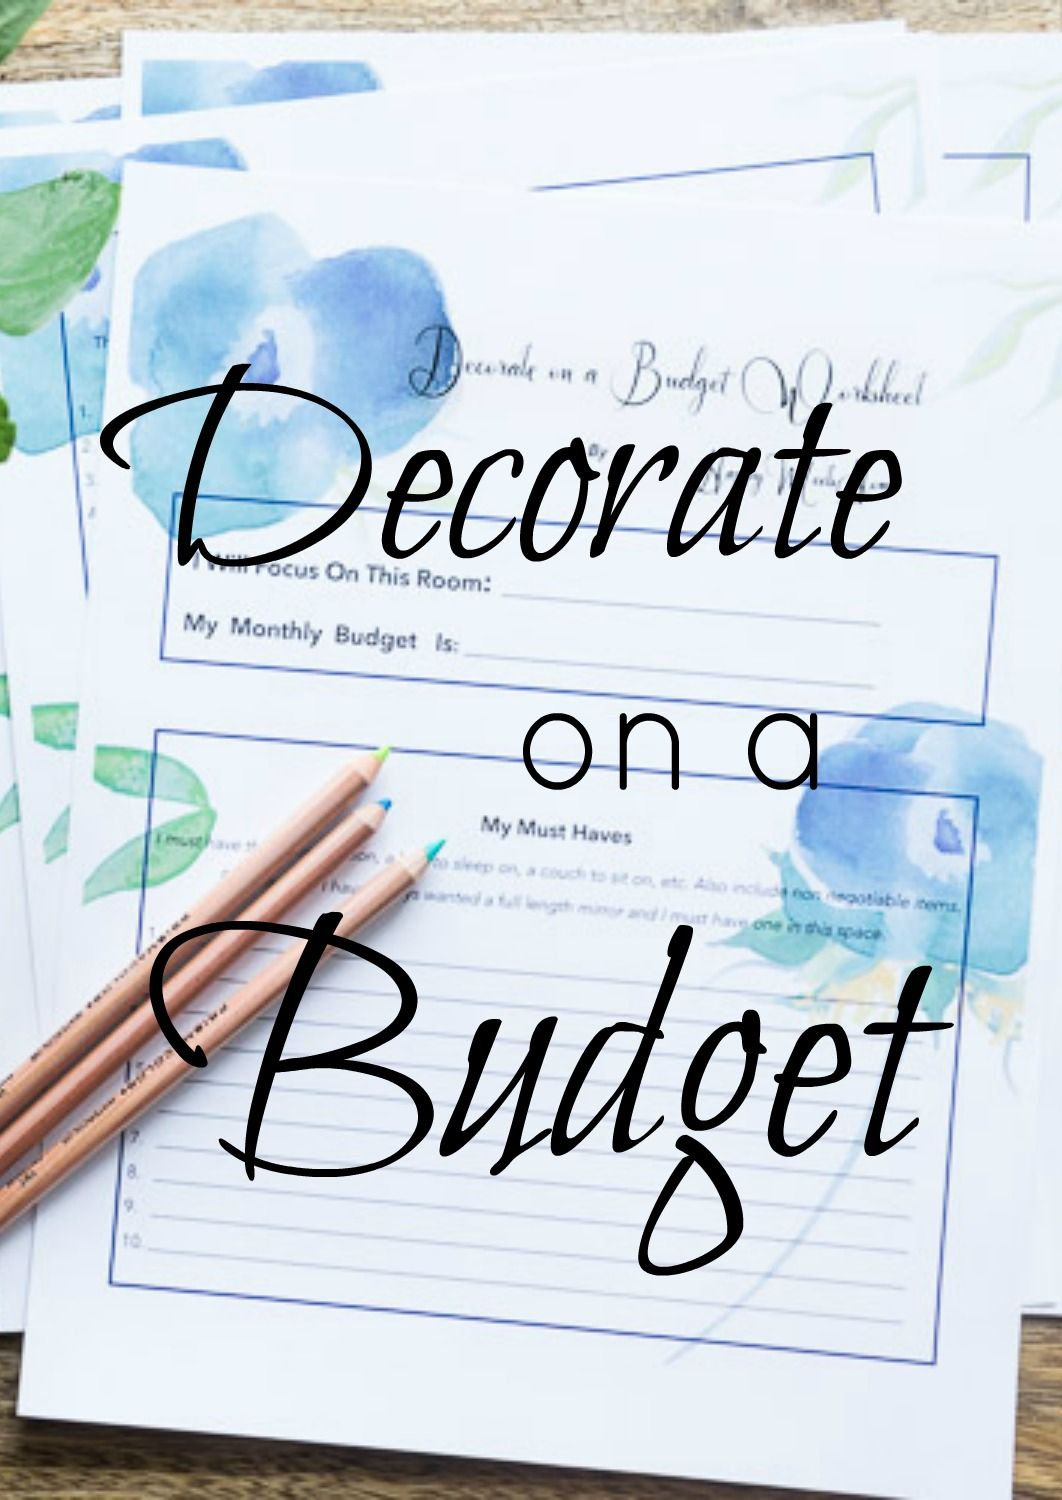 Step by Step process of creating a plan for decorating your space, based on YOUR budget!